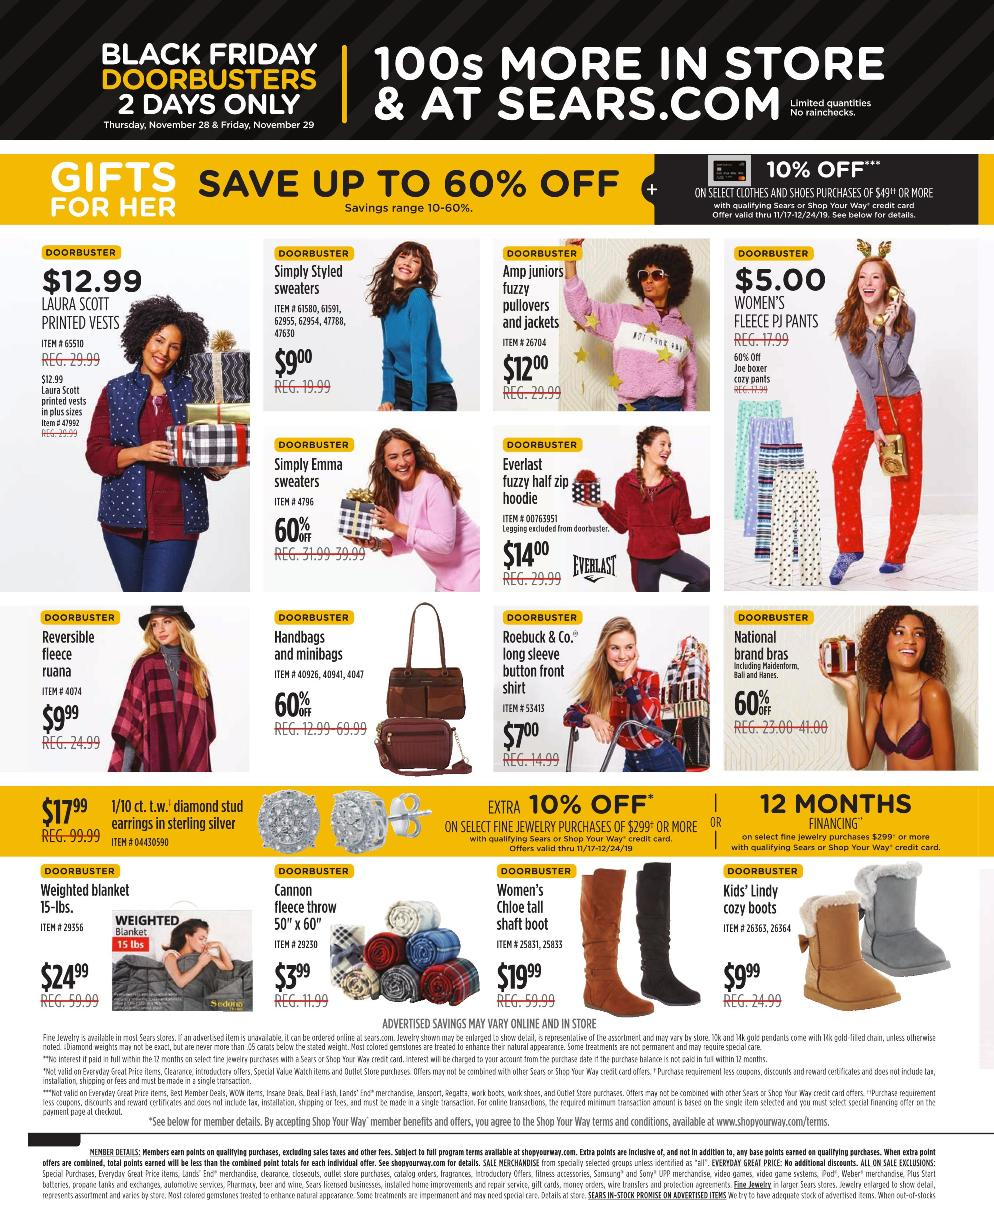 Sears Black Friday 2019 Page 2